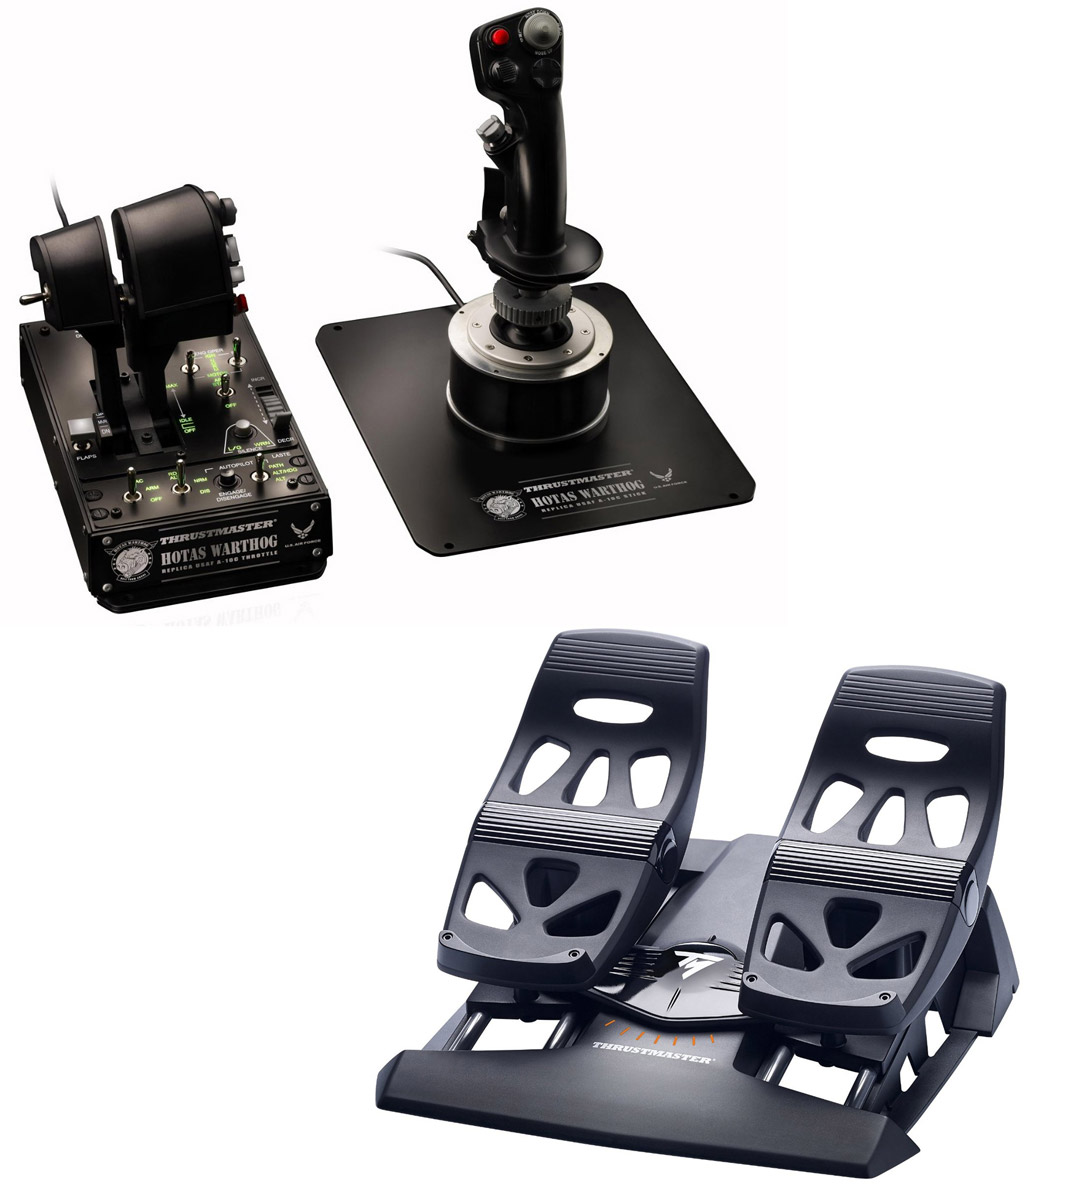 Thrustmaster HOTAS Warthog & Flight Rudders Bundle